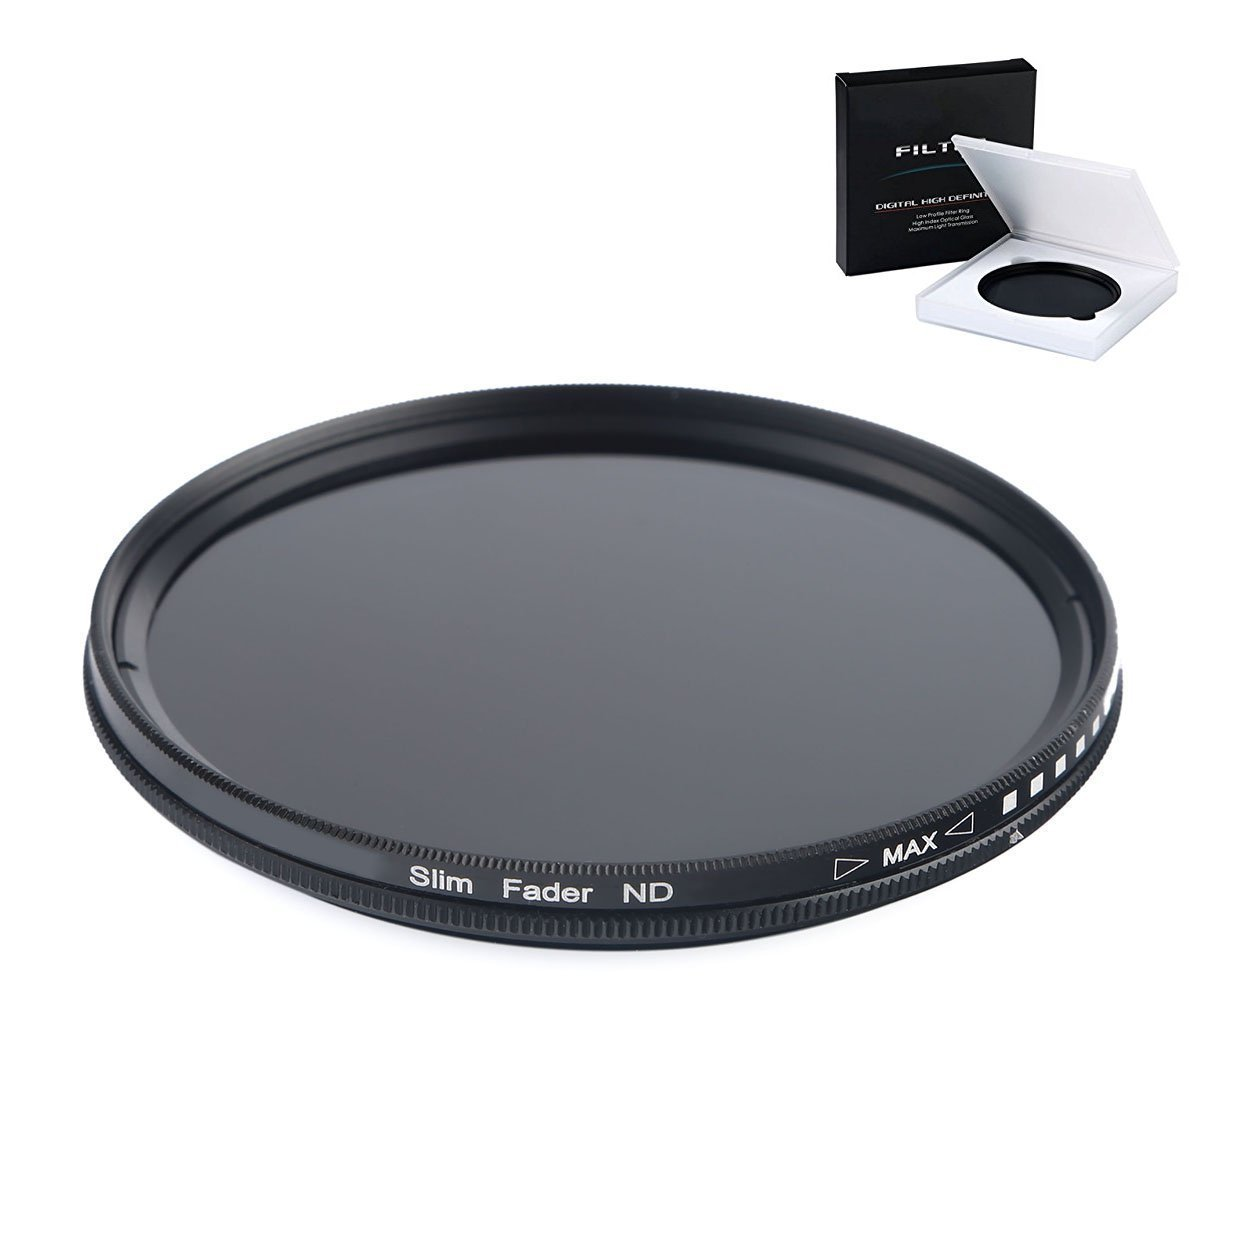 58MM Variable Neutral Density Slim Filter - ND2 to ND400 ND Filter for EOS Rebel T7i, T6, T6s, T6i, SL1, T5, T5i, T4i, T3, T3i, 80D, 70D, 60D, 60Da, 50D, 7D, 6D, 5D, 5DS, 1D Digital SLR Camera